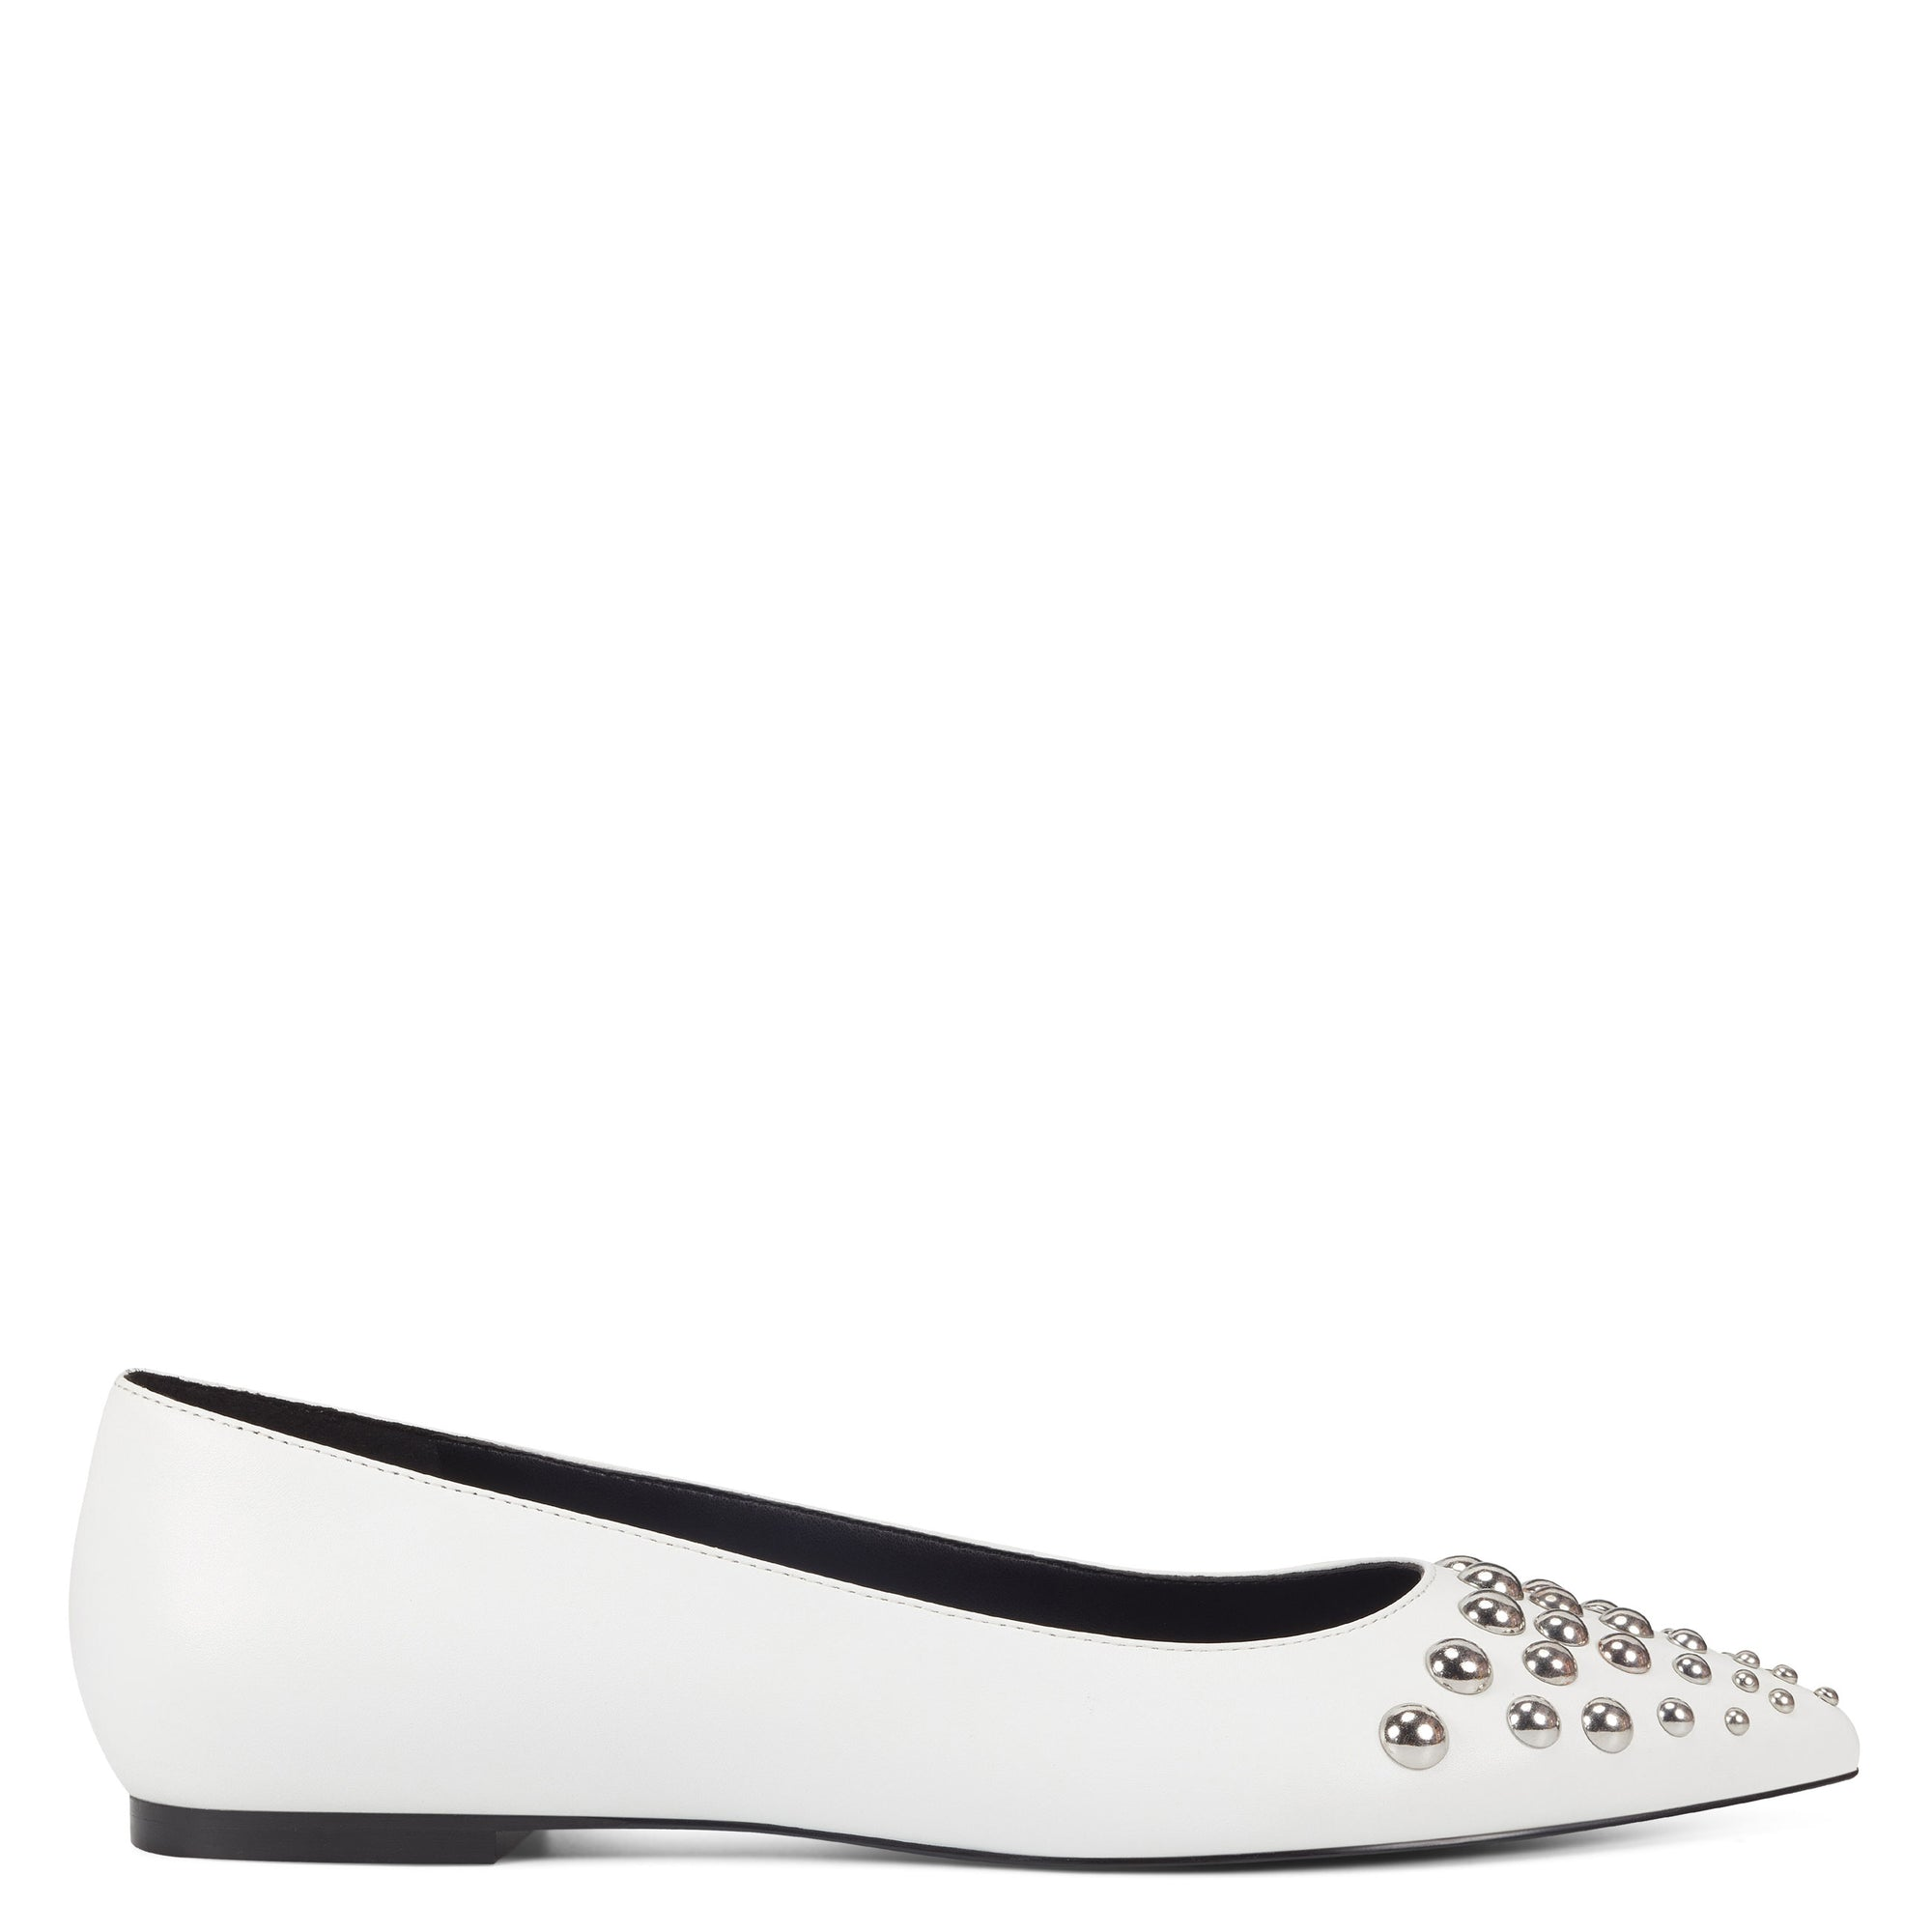 Nine West Adalyn Pointed Toe Flats